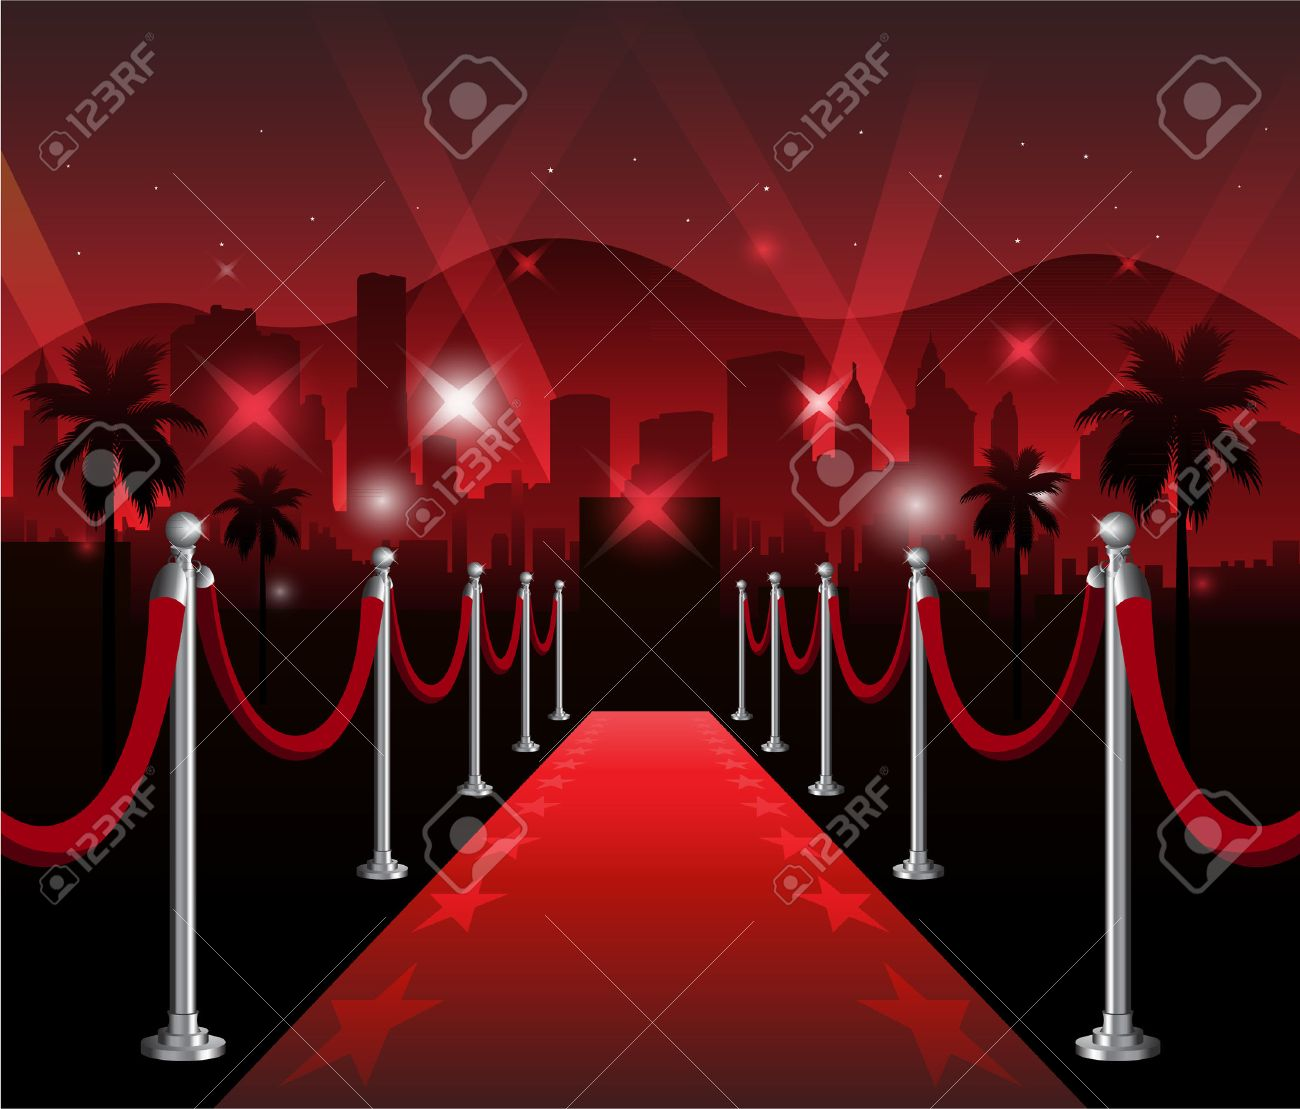 Red carpet premiere elegant event with hollywood in background - 48367612